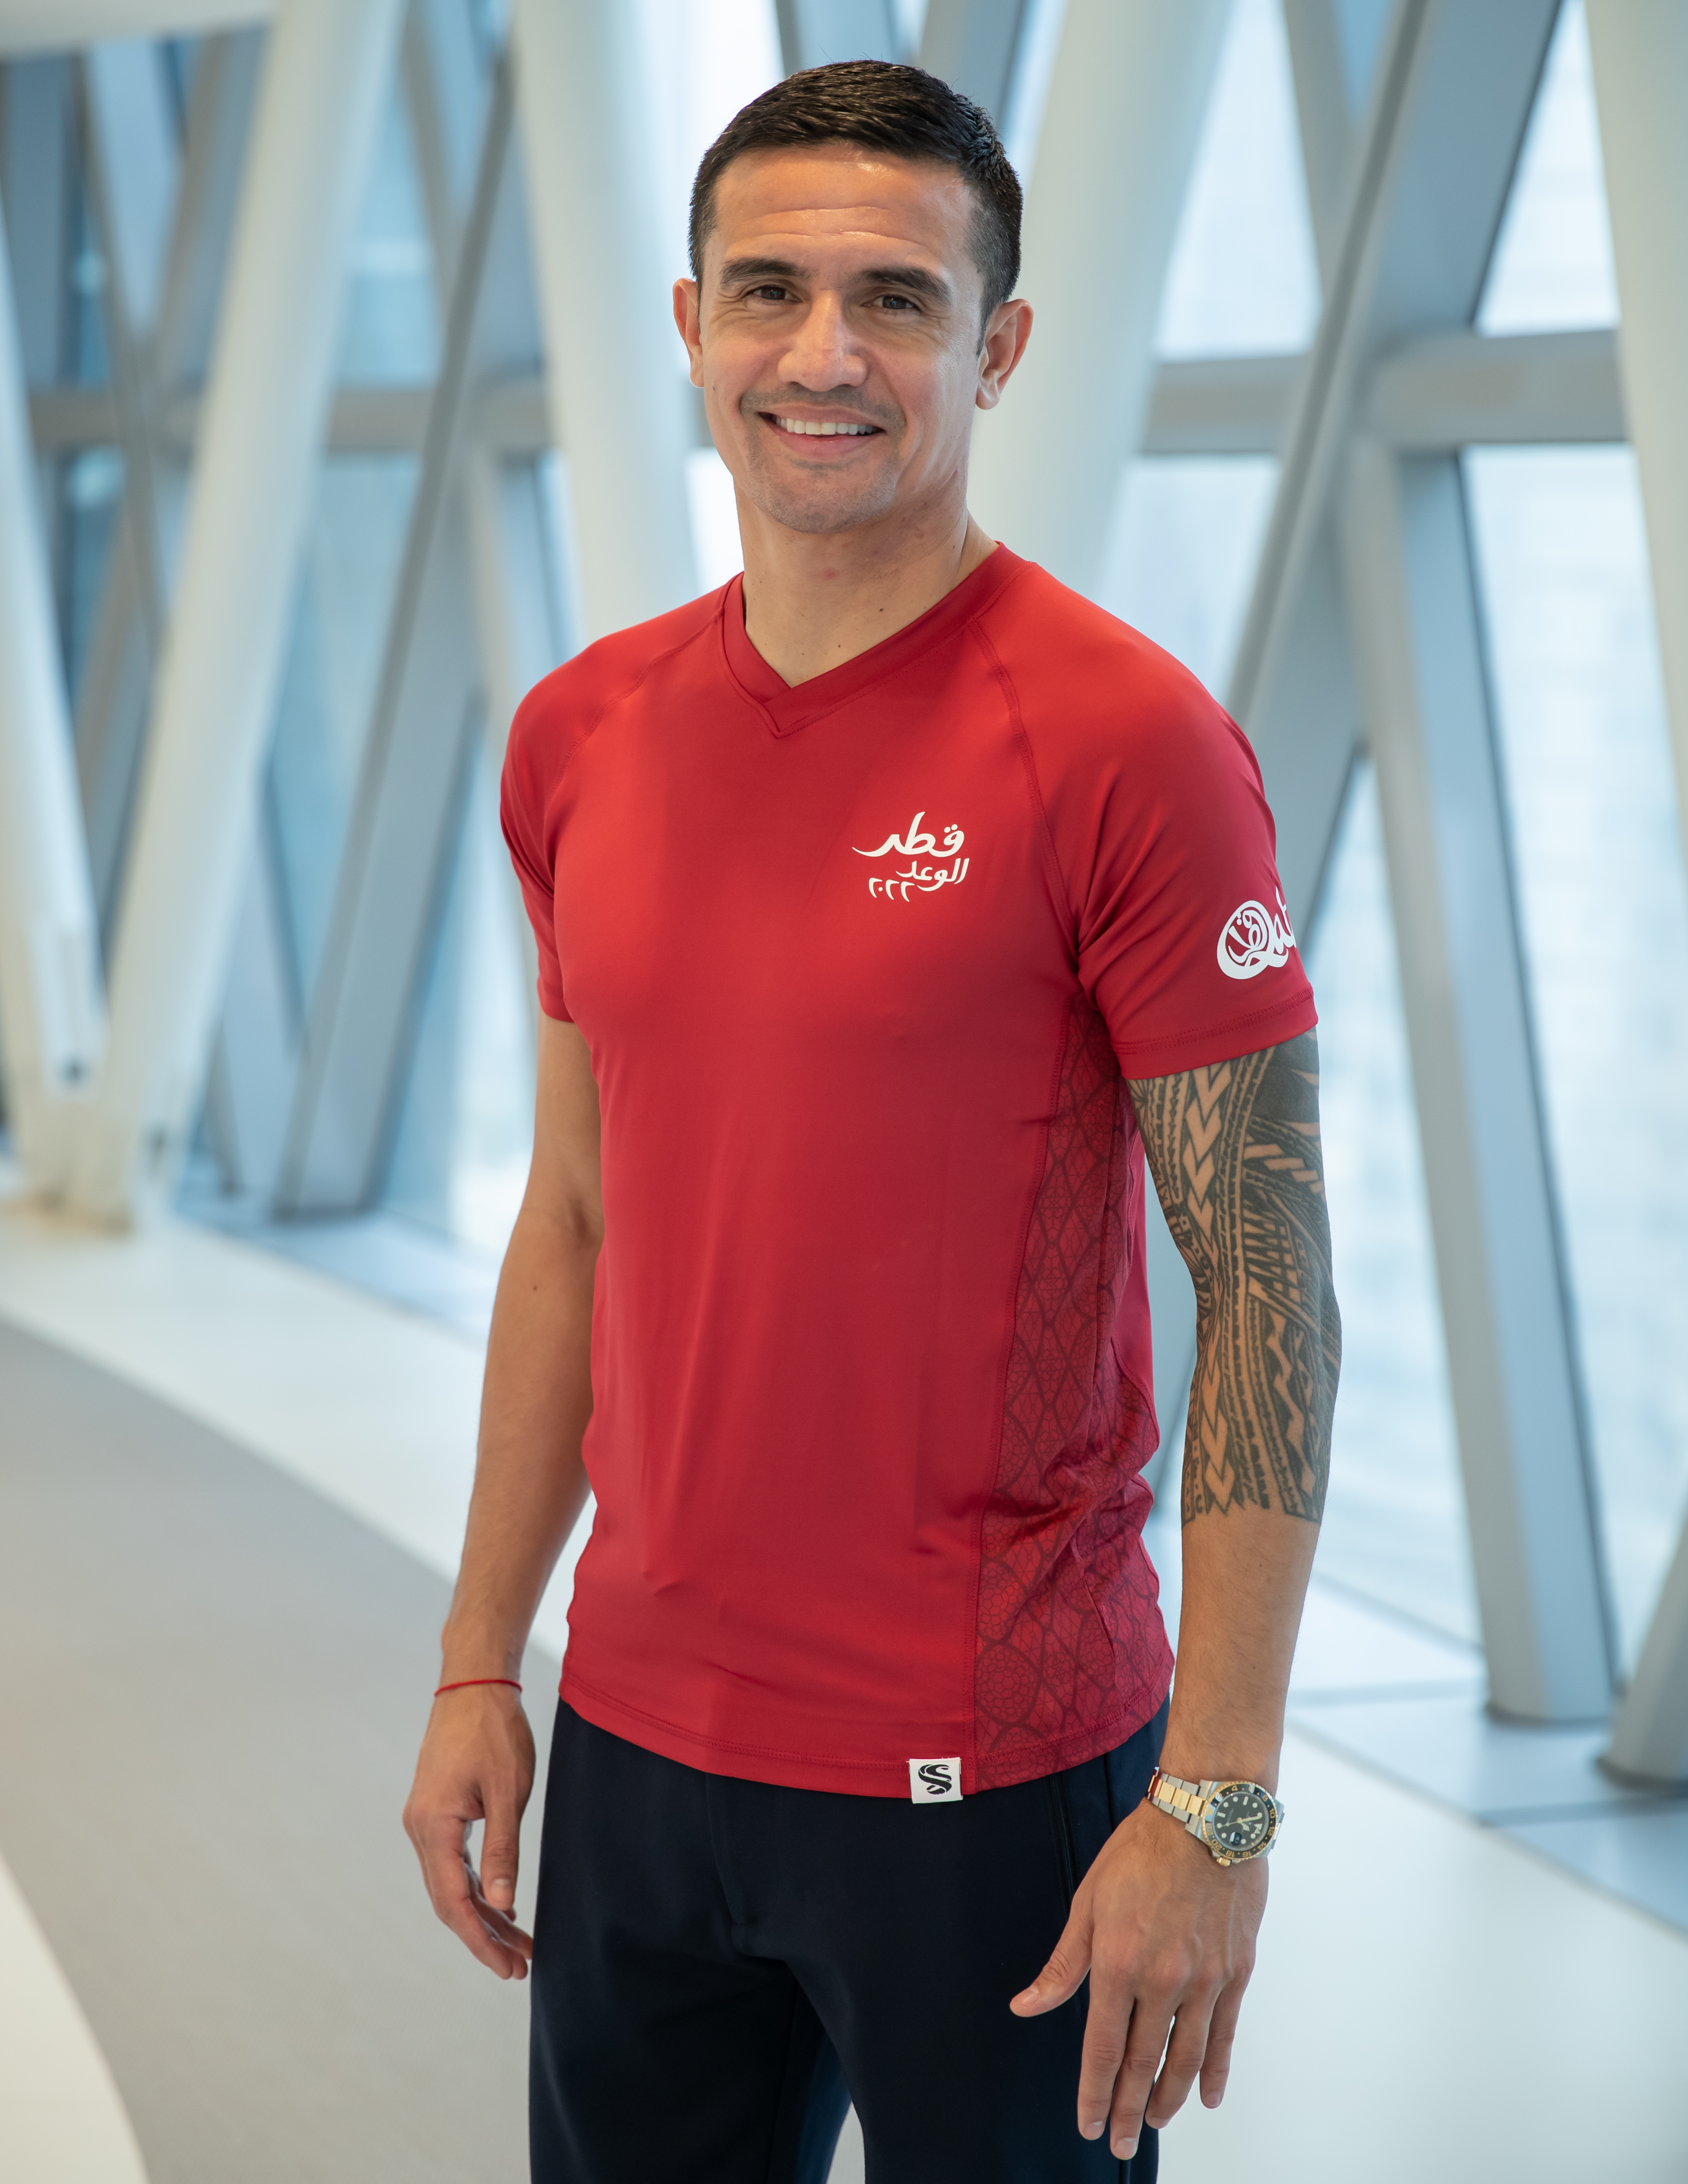 Tim Cahill: When this is all over, sport can play a vital role in repairing hearts and minds